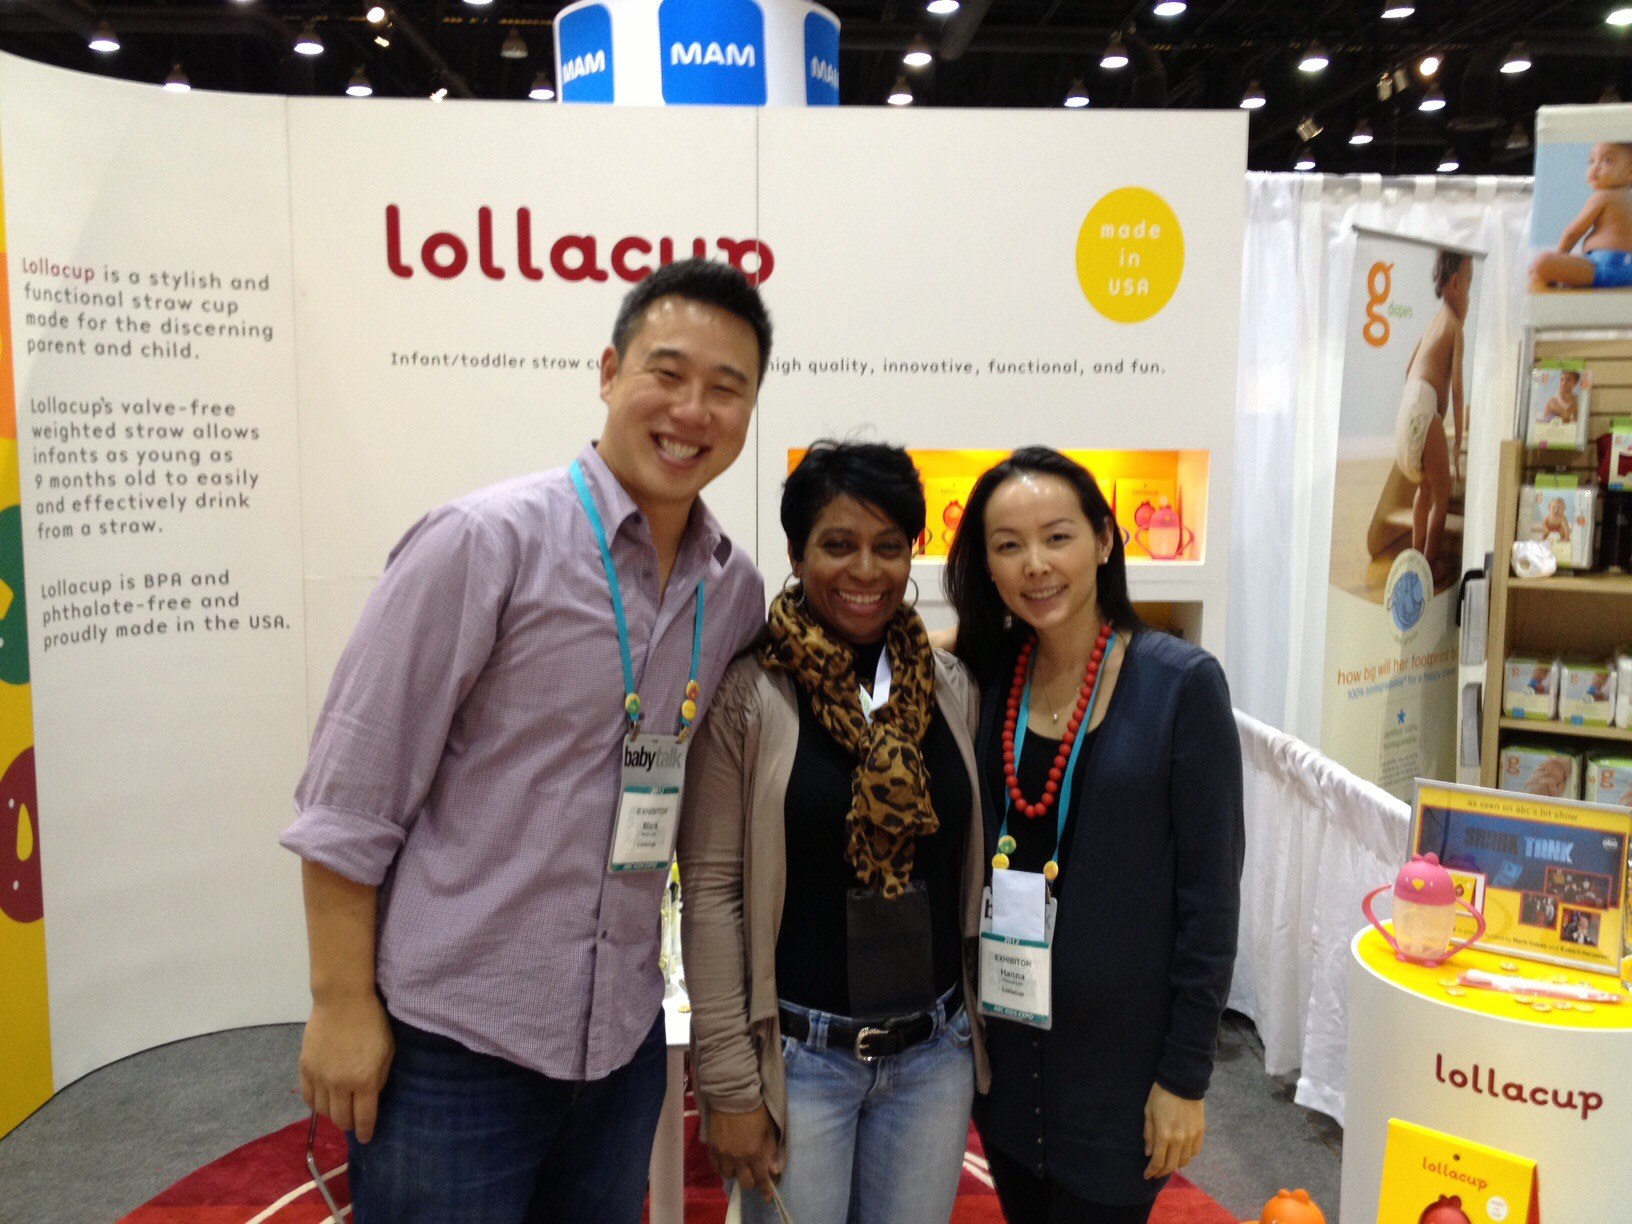 Lollaland co-founder Mark Lim (Far right)